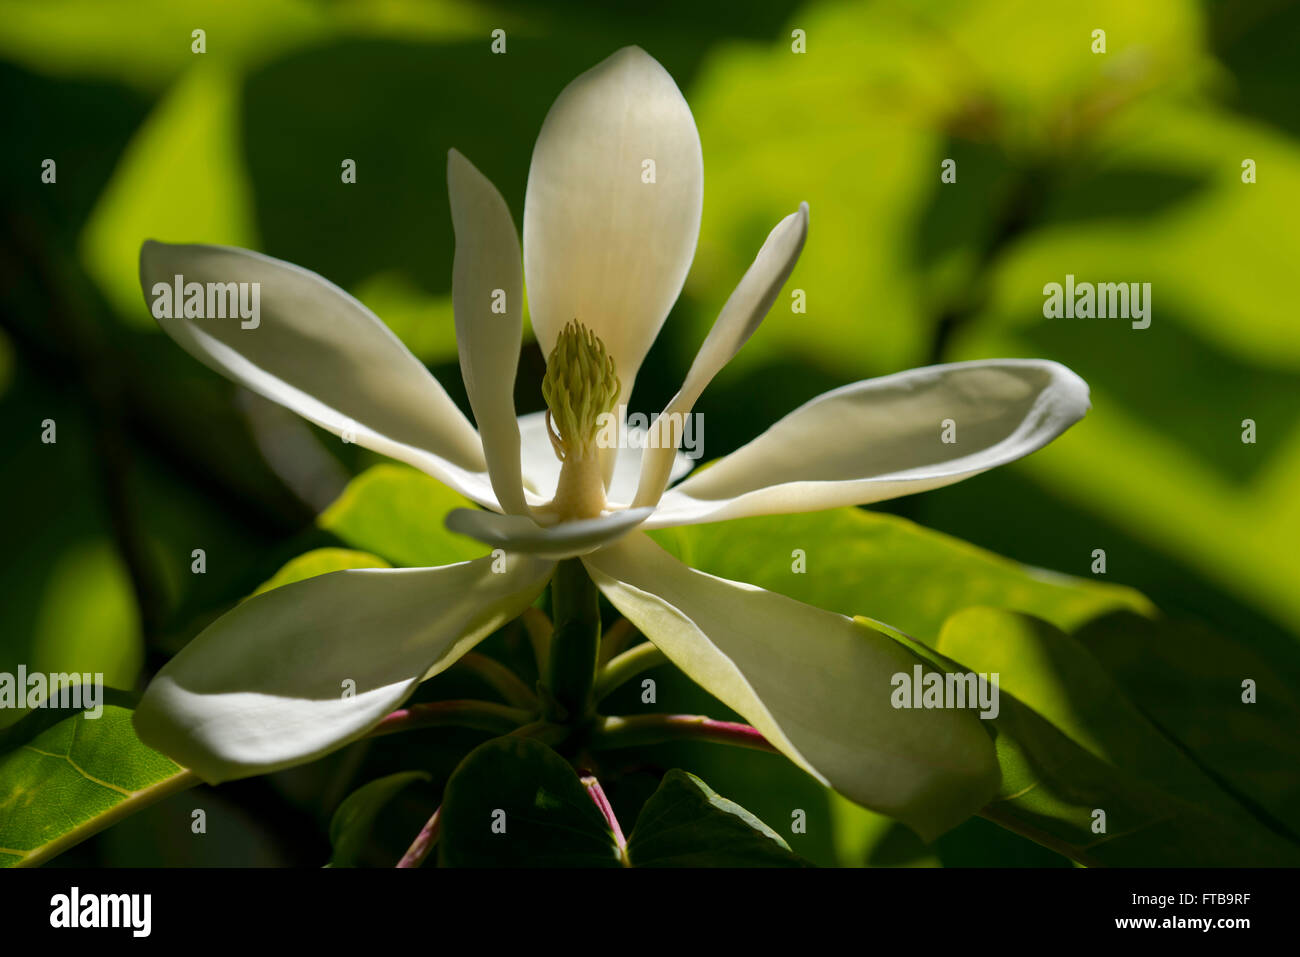 Magnolia Fraseri A Close Up Of A Summer Flowering Magnolia At The